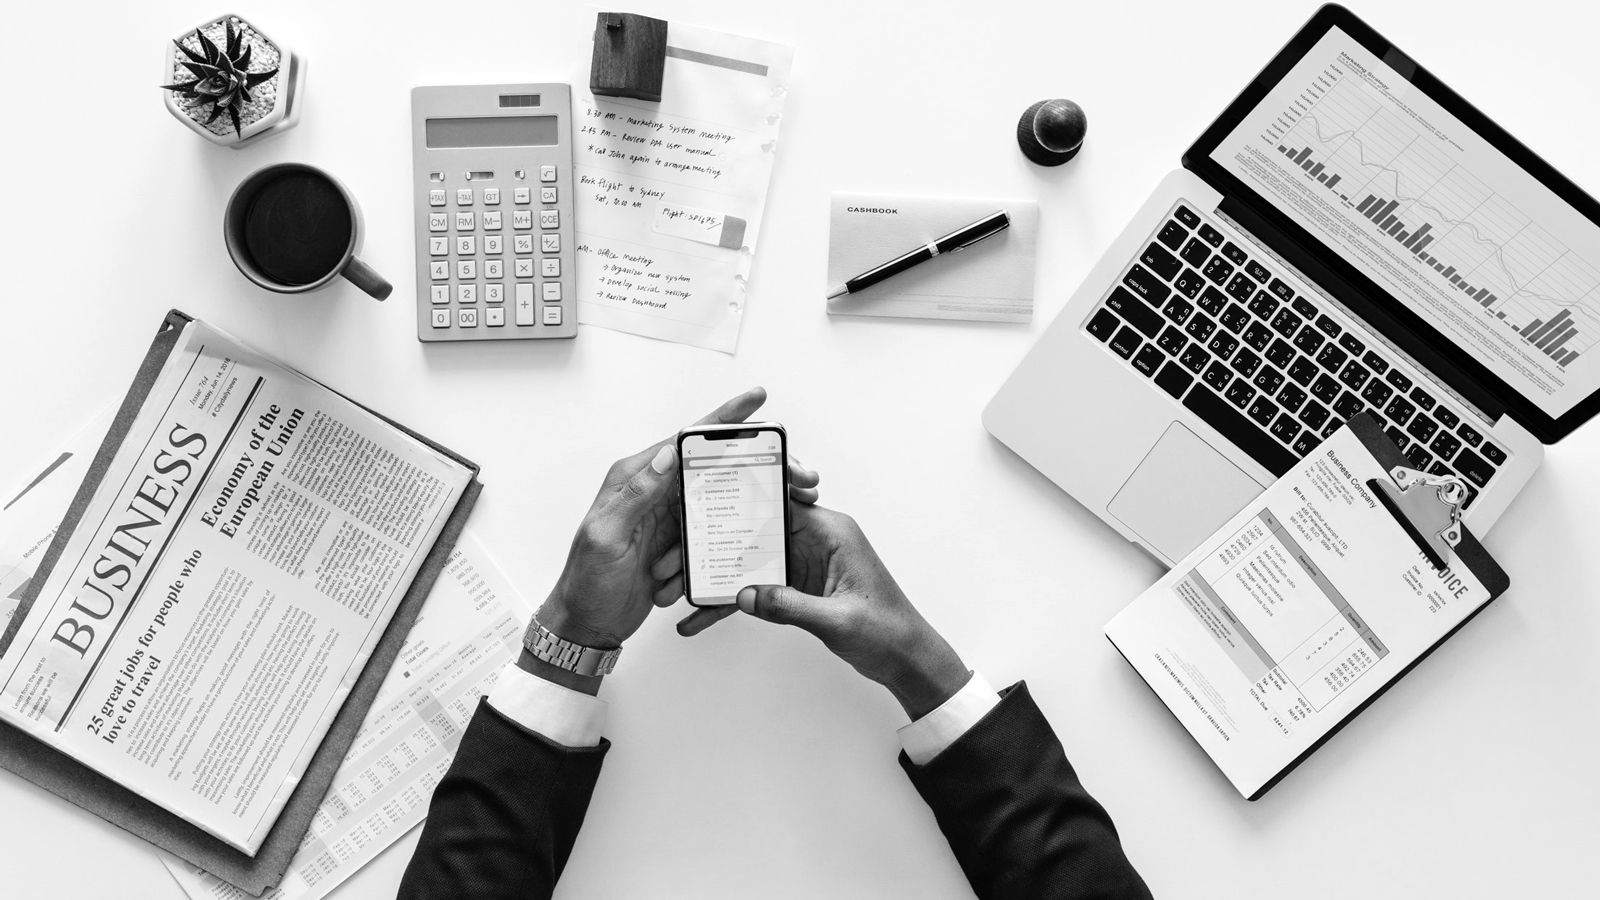 The best investment apps for every type of investor